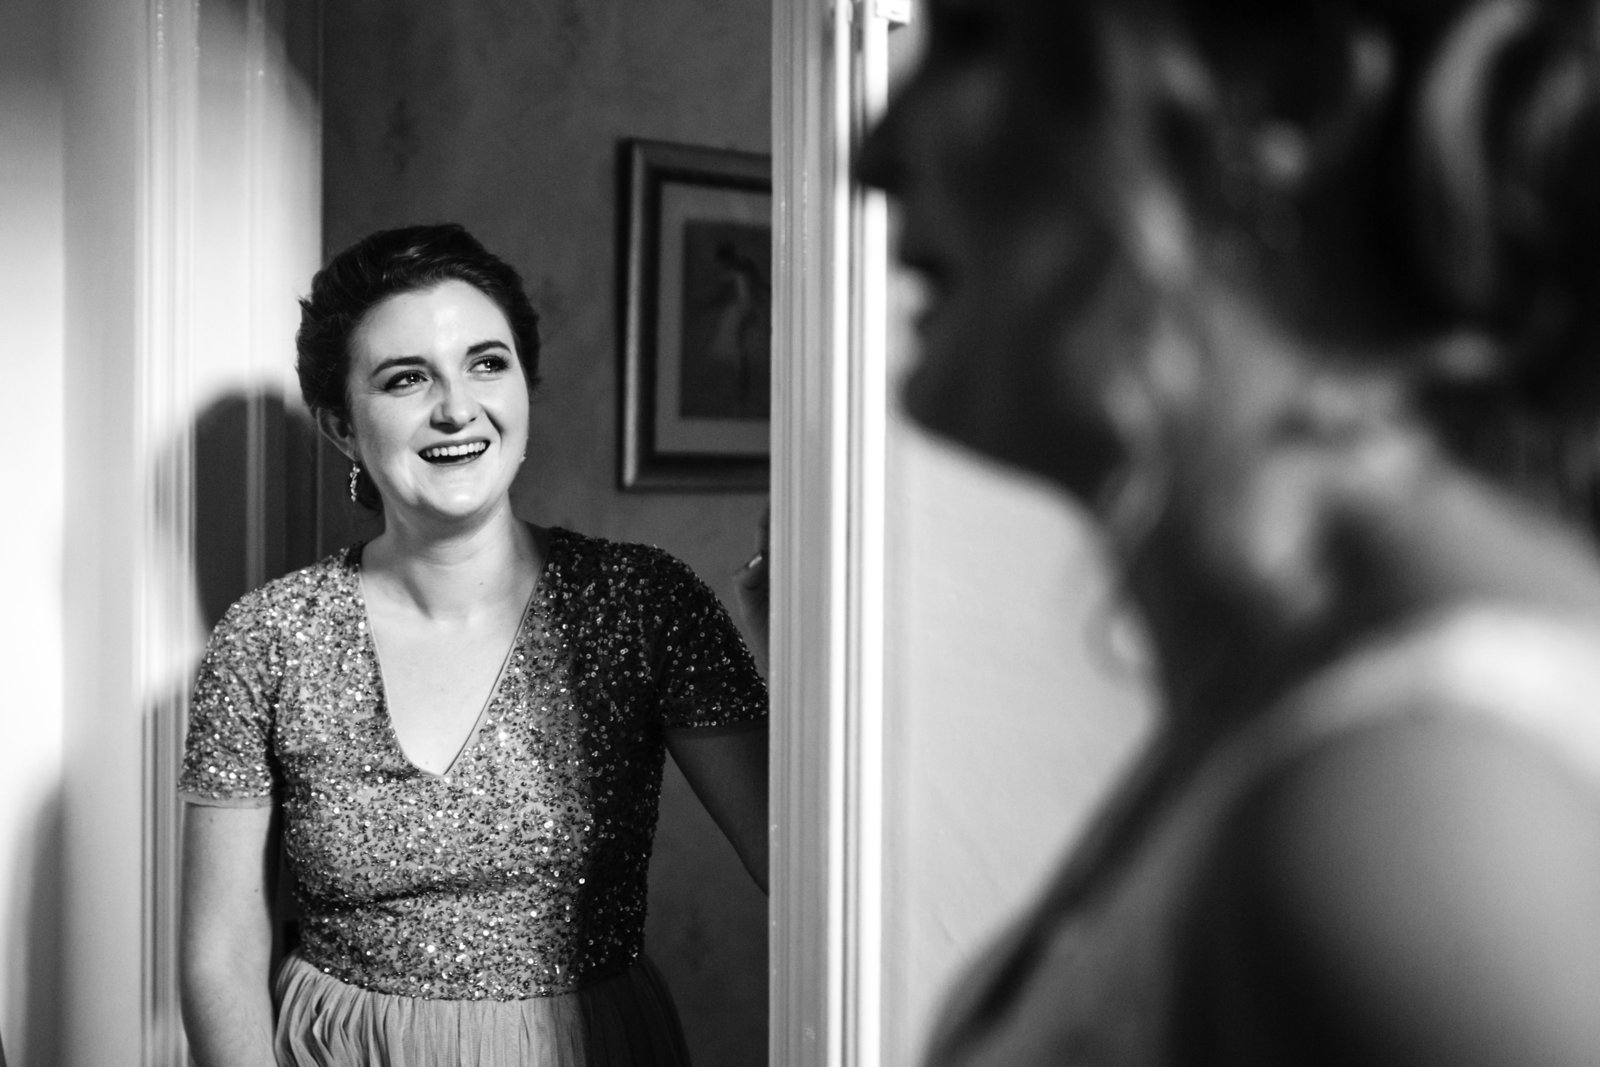 Bridesmaid sees her Sister in her wedding dress for the first tiem, she smiles and has a happy tear in her eye.